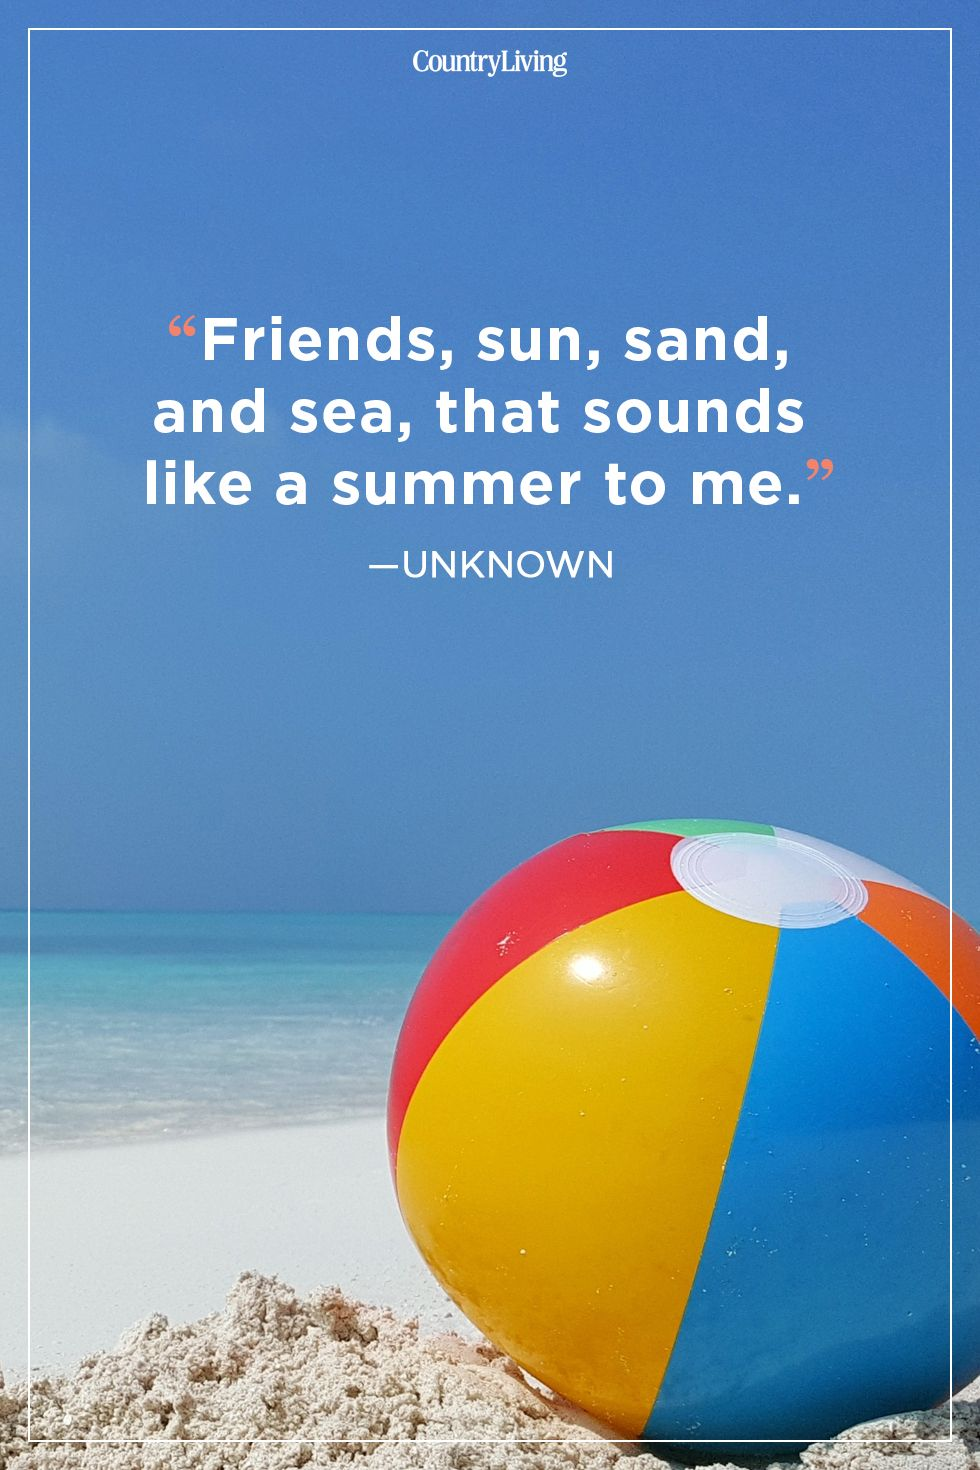 11 Best Summer Quotes - Inspirational Warm-Weather Sayings